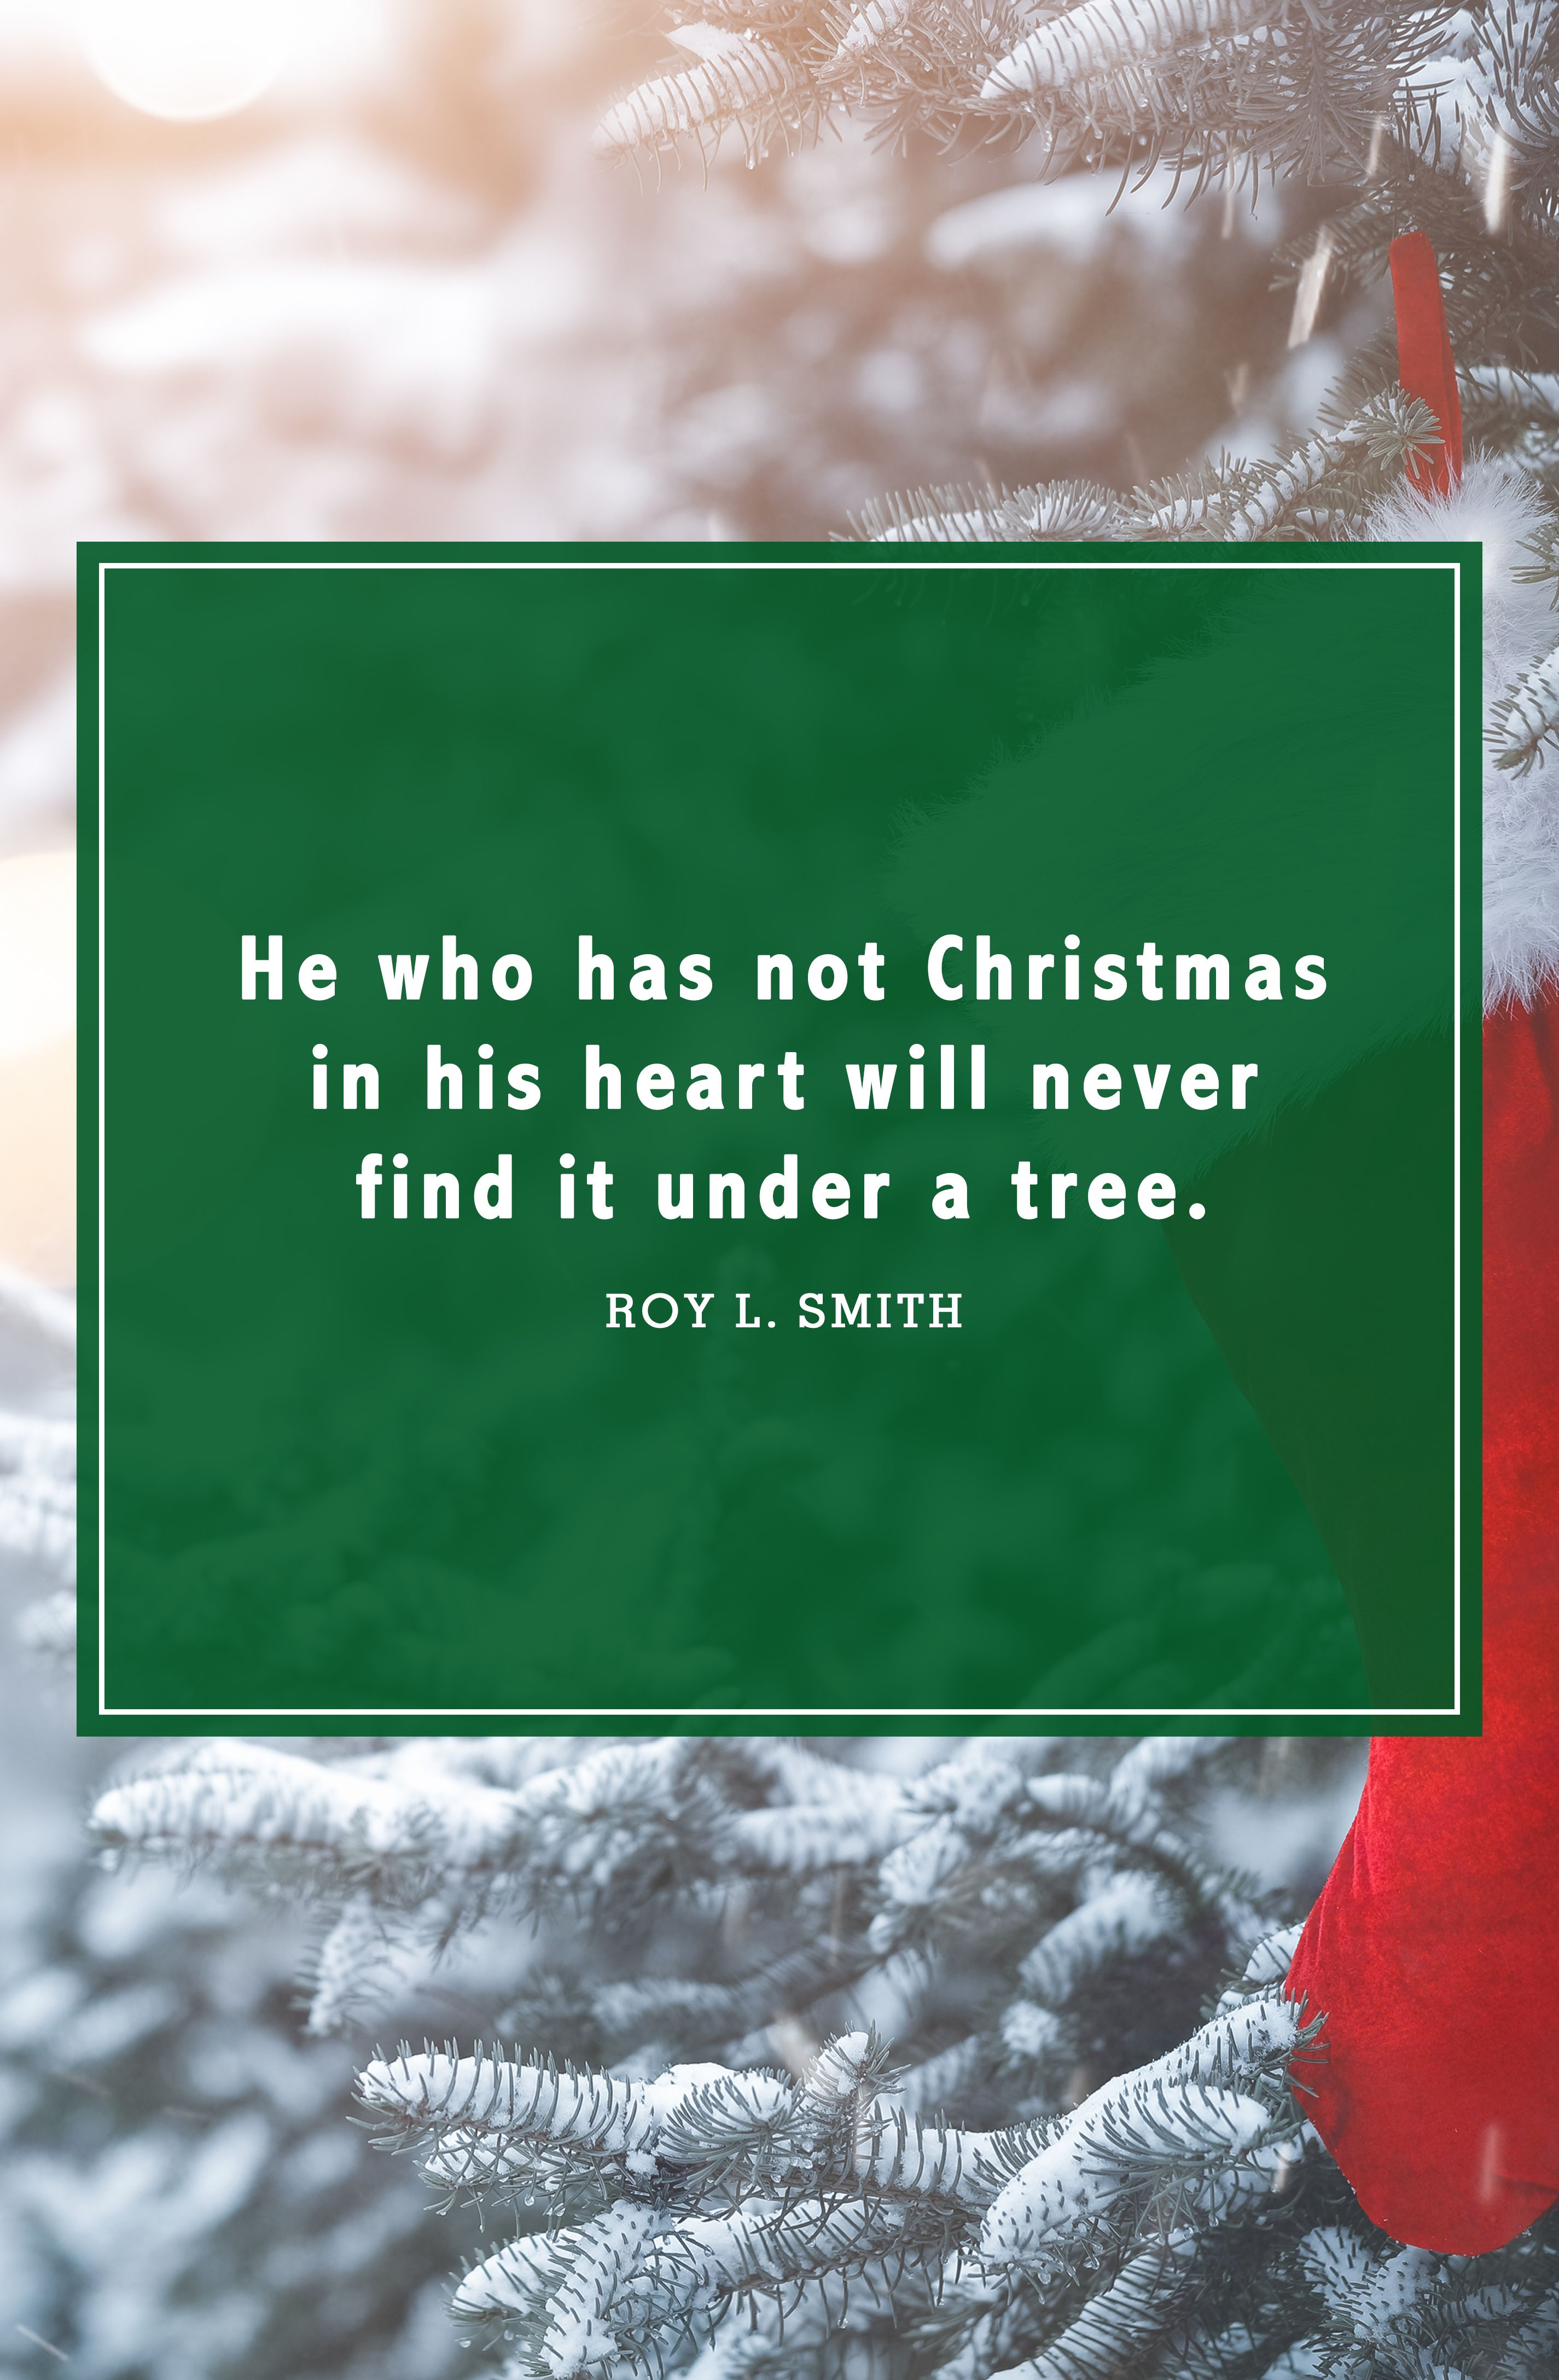 Christmas Quotes 52 Best Christmas Quotes   Most Inspiring & Festive Holiday Sayings